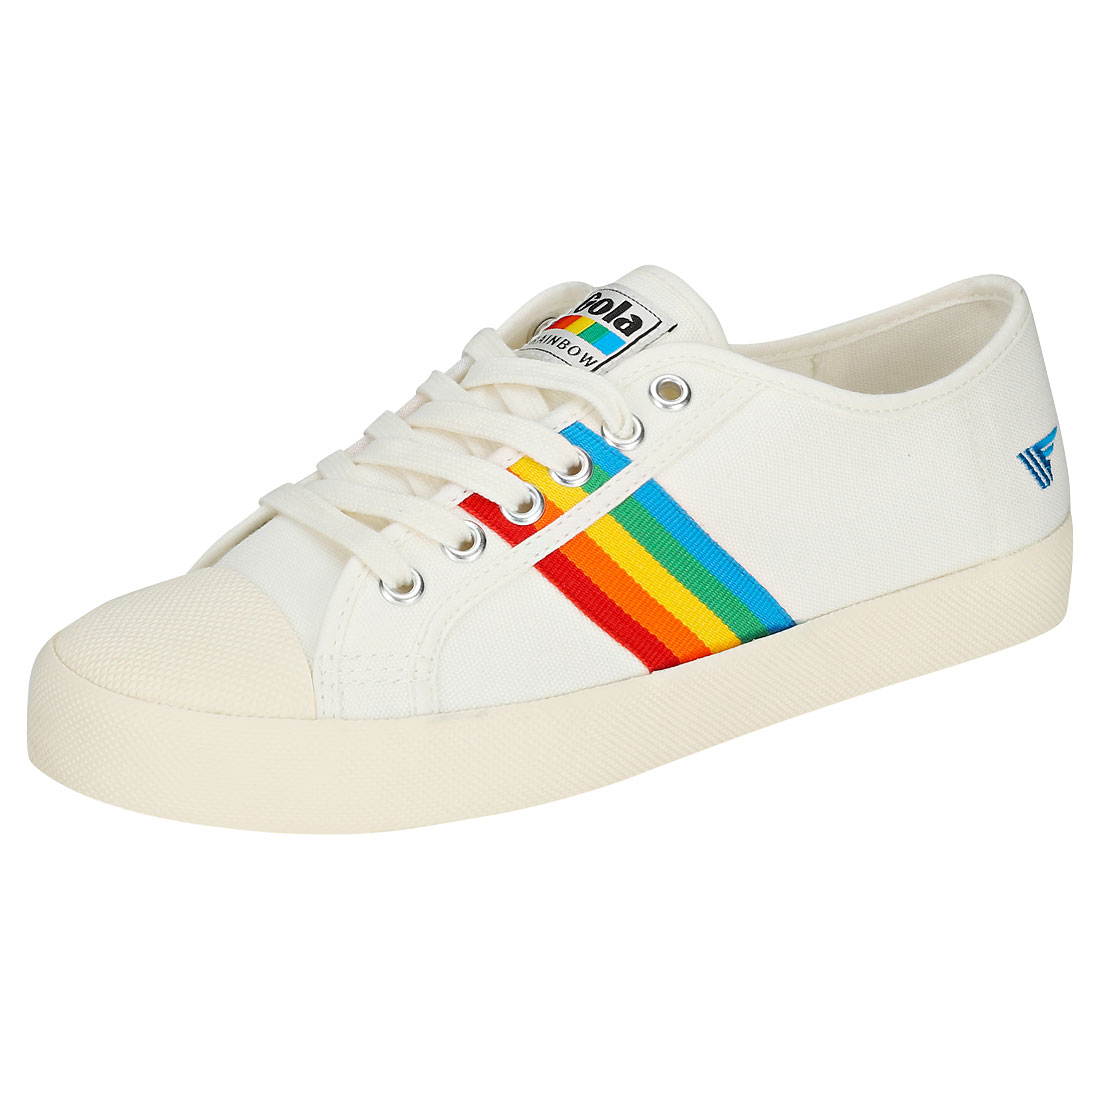 Gola Coaster Rainbow Damen Off WEISS Multicolour Leinwand Sneaker - 36 EU